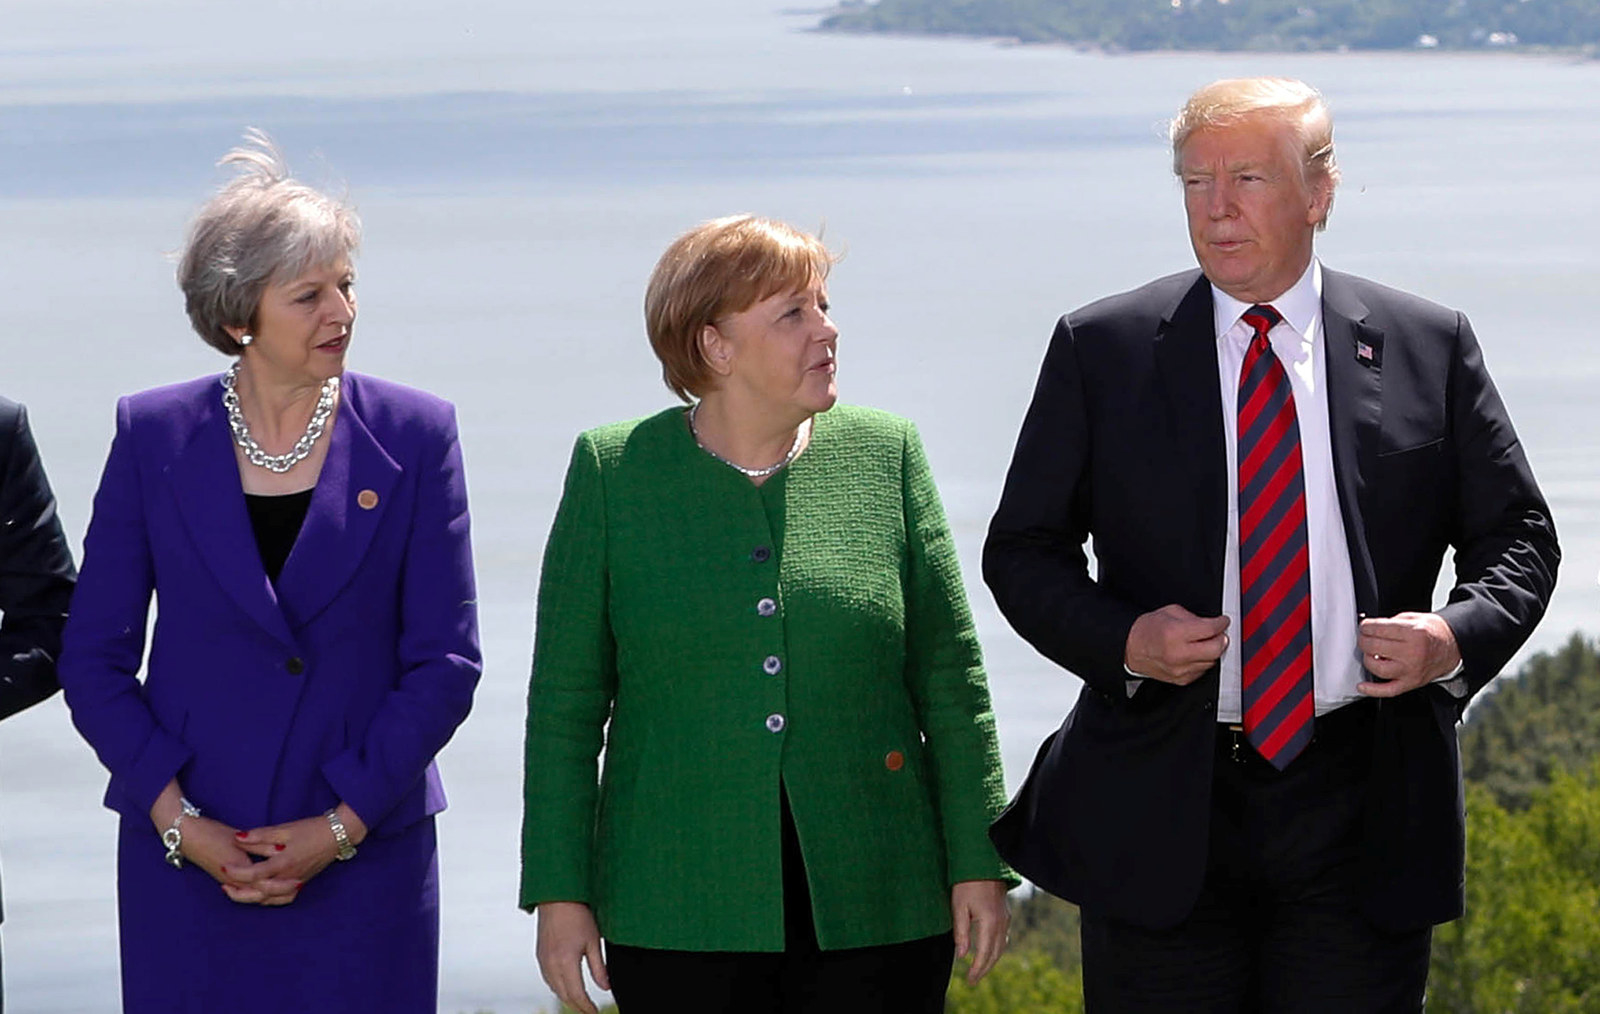 This Incredible Photo Of Trump Surrounded By G7 Leaders Is Like A Renaissance Painting